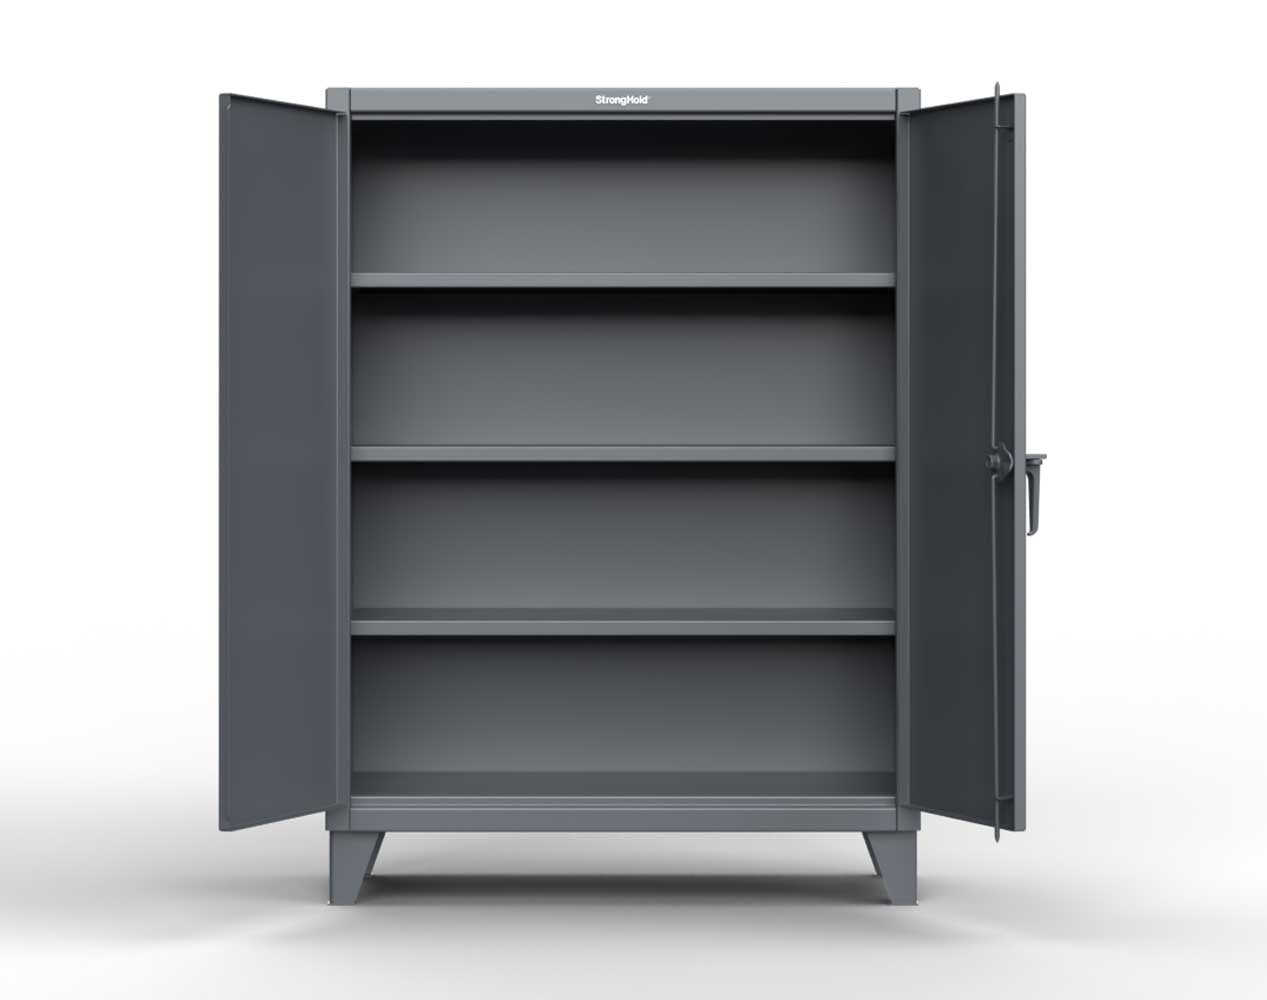 Extra Heavy Duty 12 GA Cabinet with 3 Shelves – 48 In. W x 24 In. D x 66 In. H